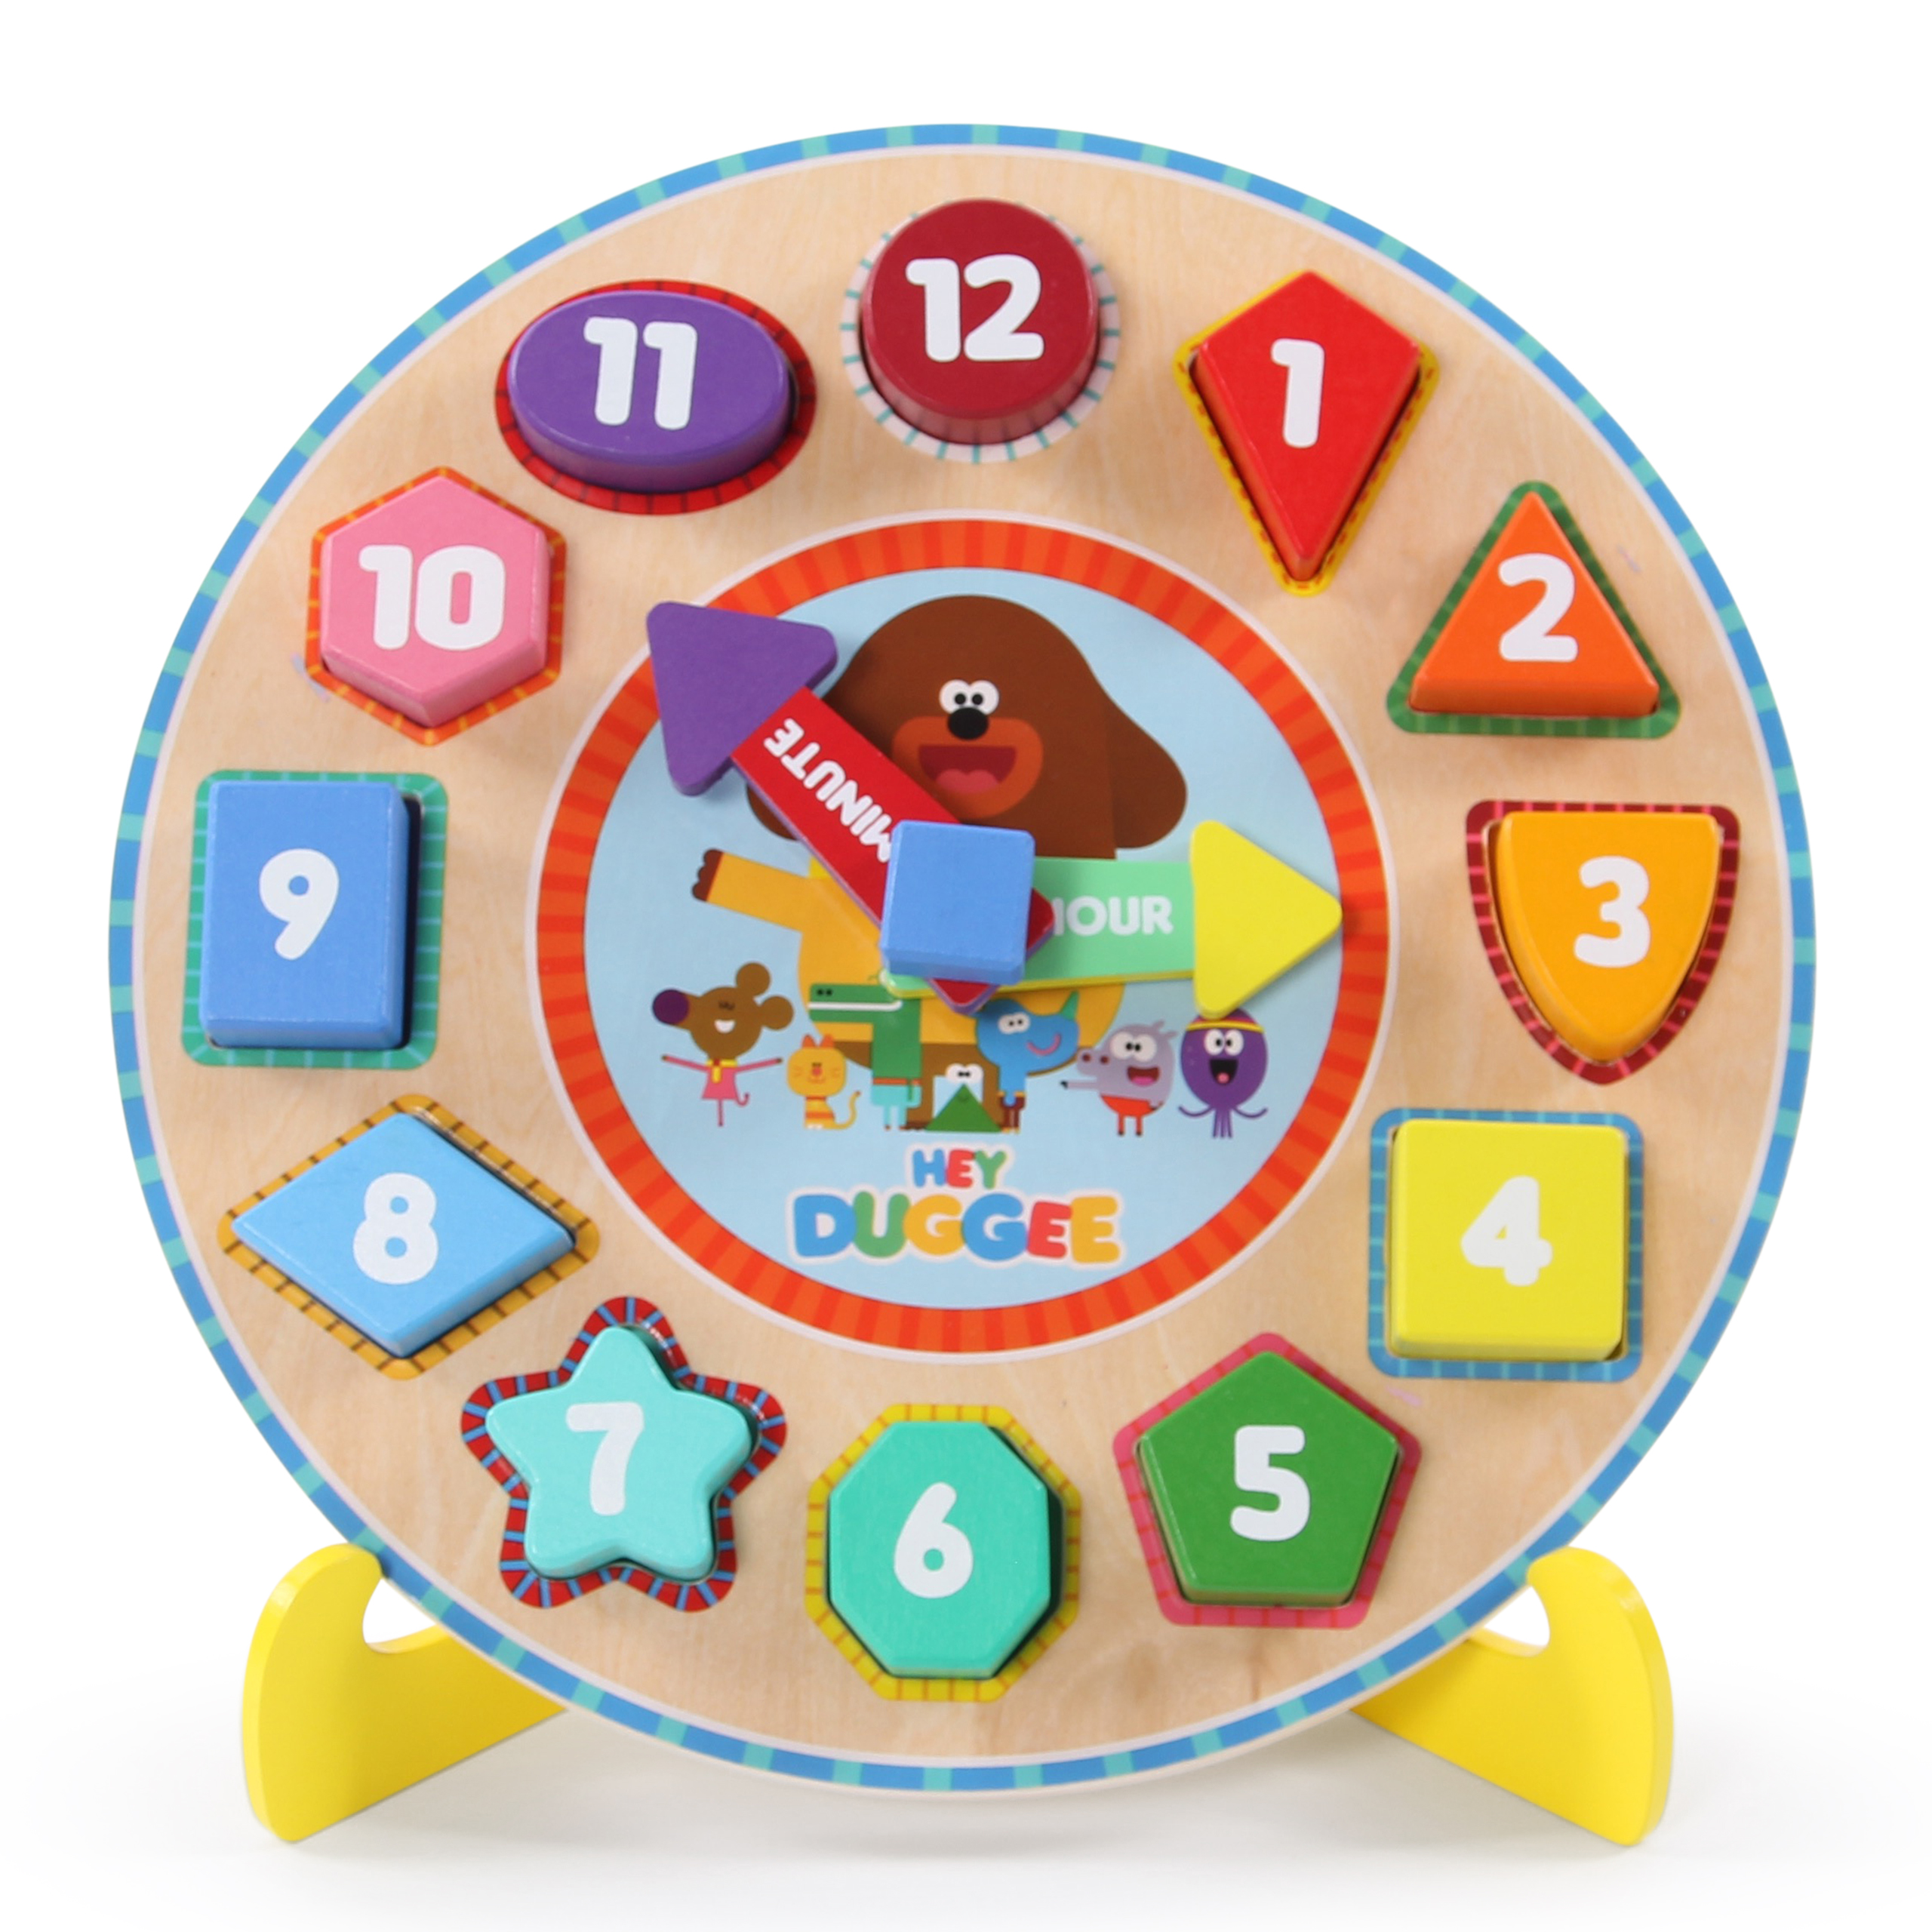 Hey Dugee Wooden Puzzle Clock, worth £12.00